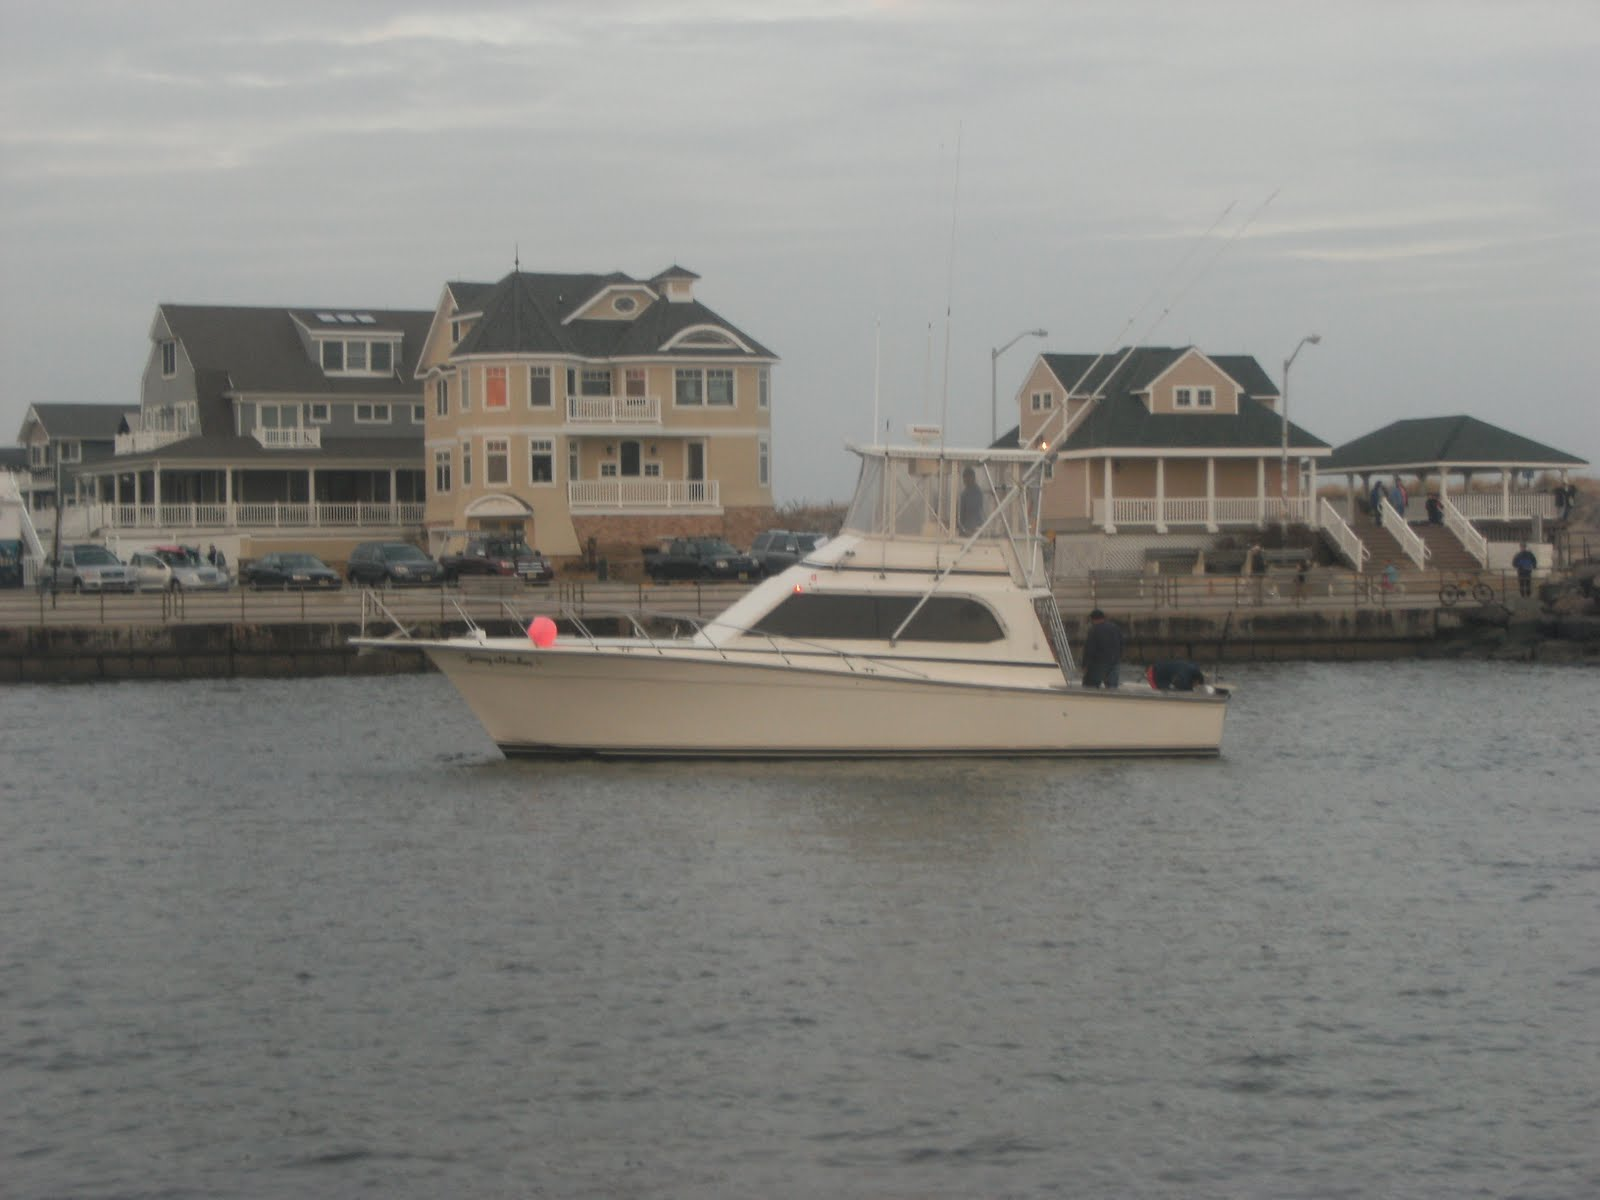 New jersey fishing charters nj striper charters new for Fishing charters nj